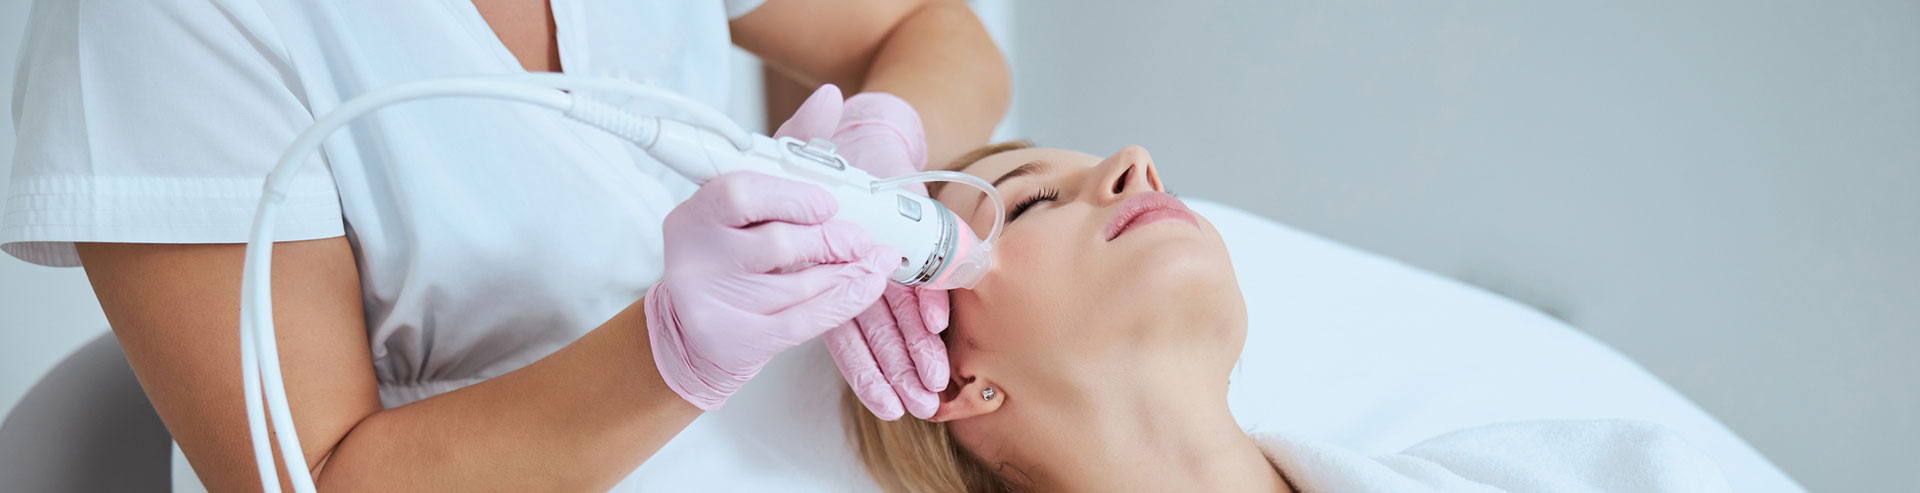 A woman is having Radio Frequency Microneedling treatment